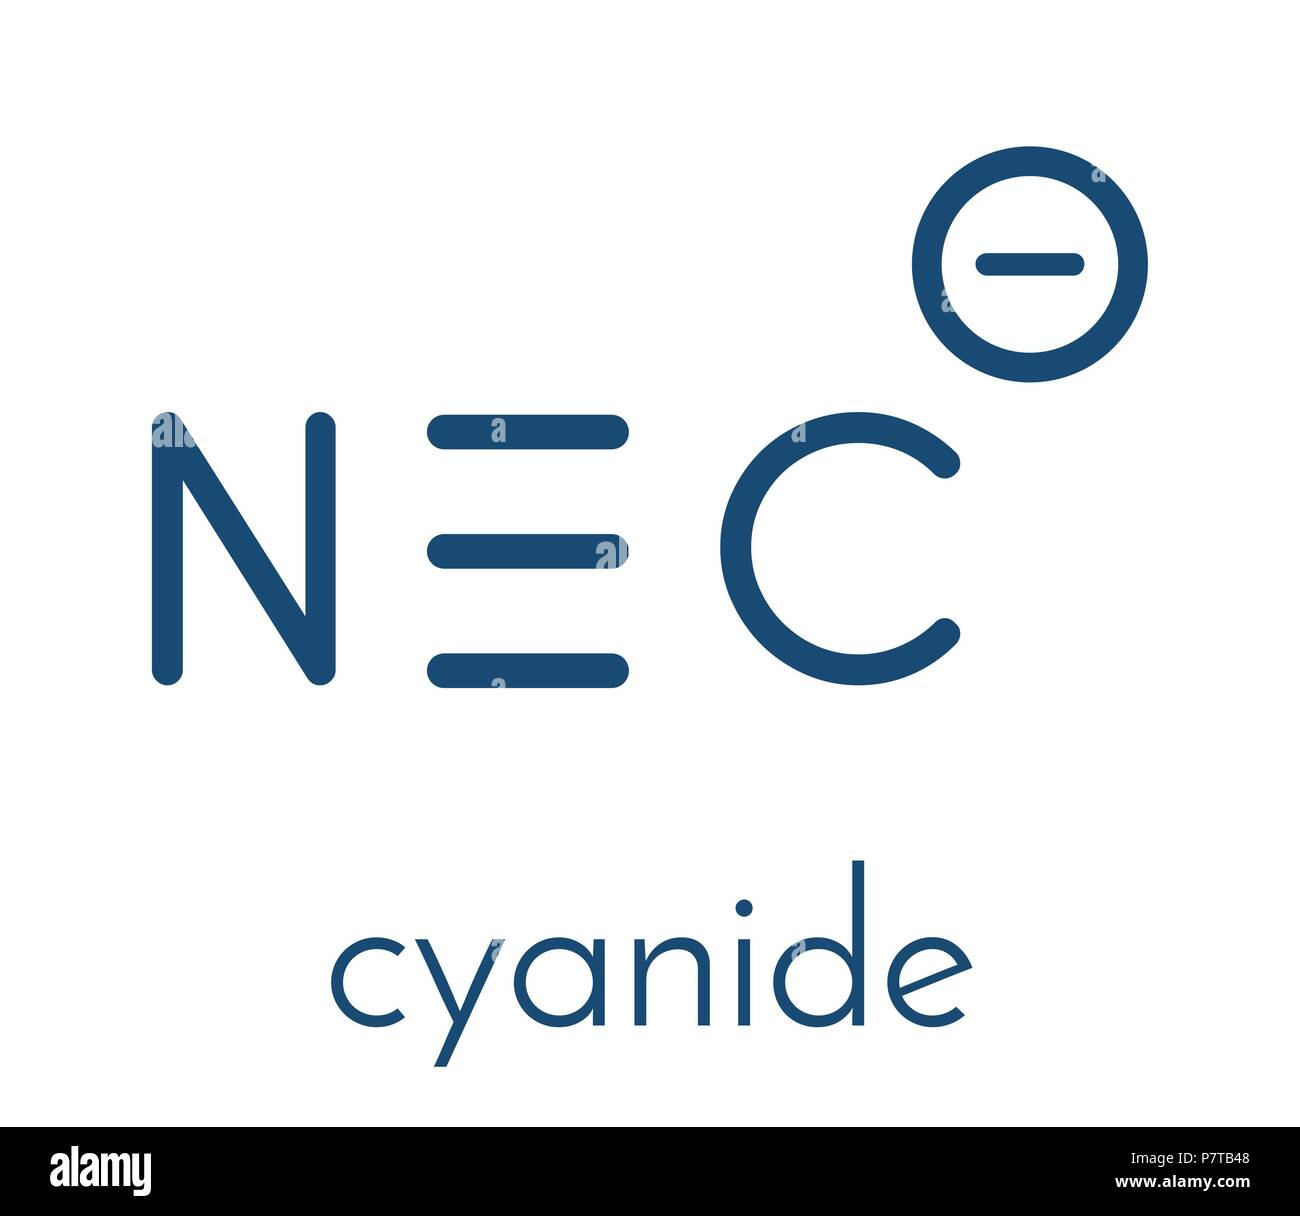 Cyanide anion, chemical structure. Cyanides are toxic, due to inhibition of the enzyme cytochrome c oxidase. Skeletal formula. Stock Vector